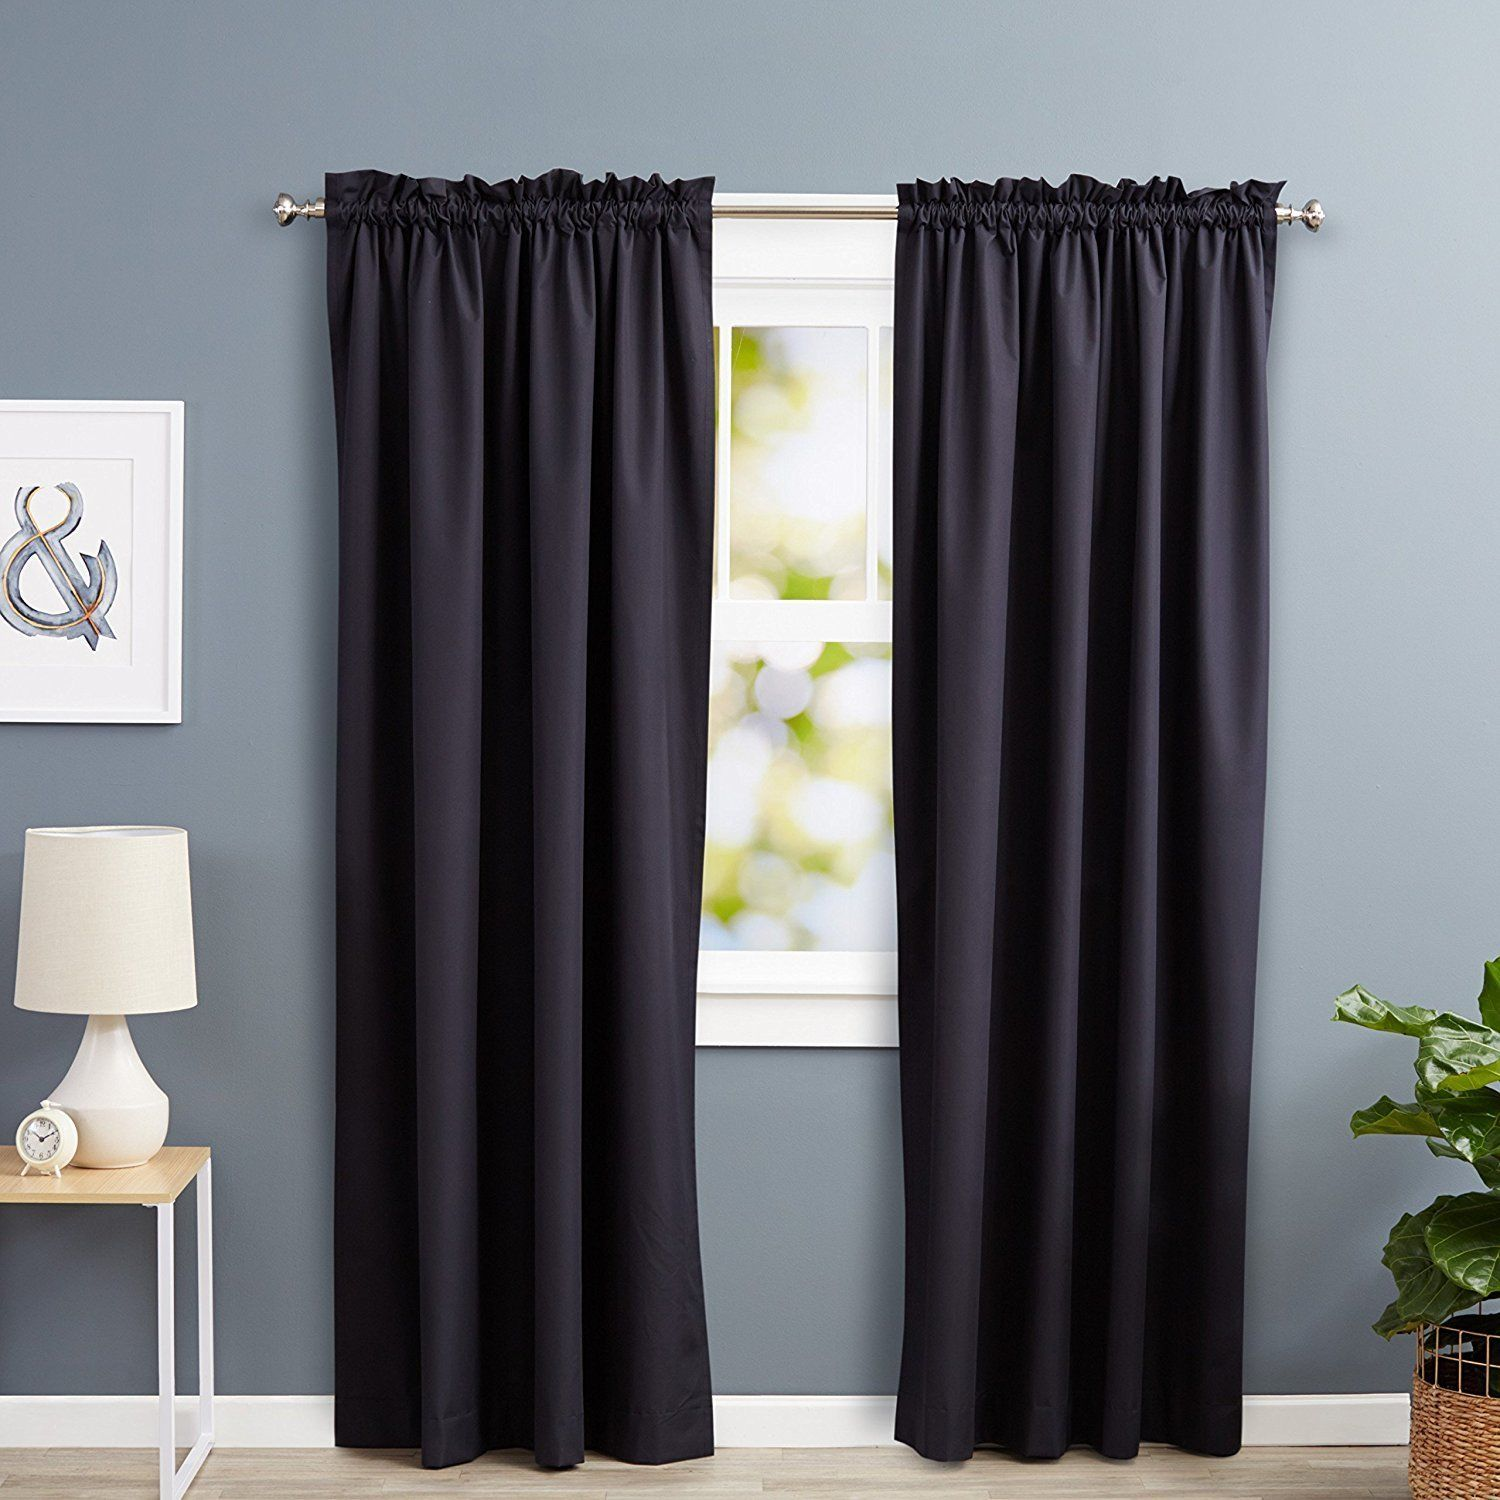 36 Inch Room Darkening Curtains 7 Of The Best Blackout Curtains On Amazon According To Reviewers